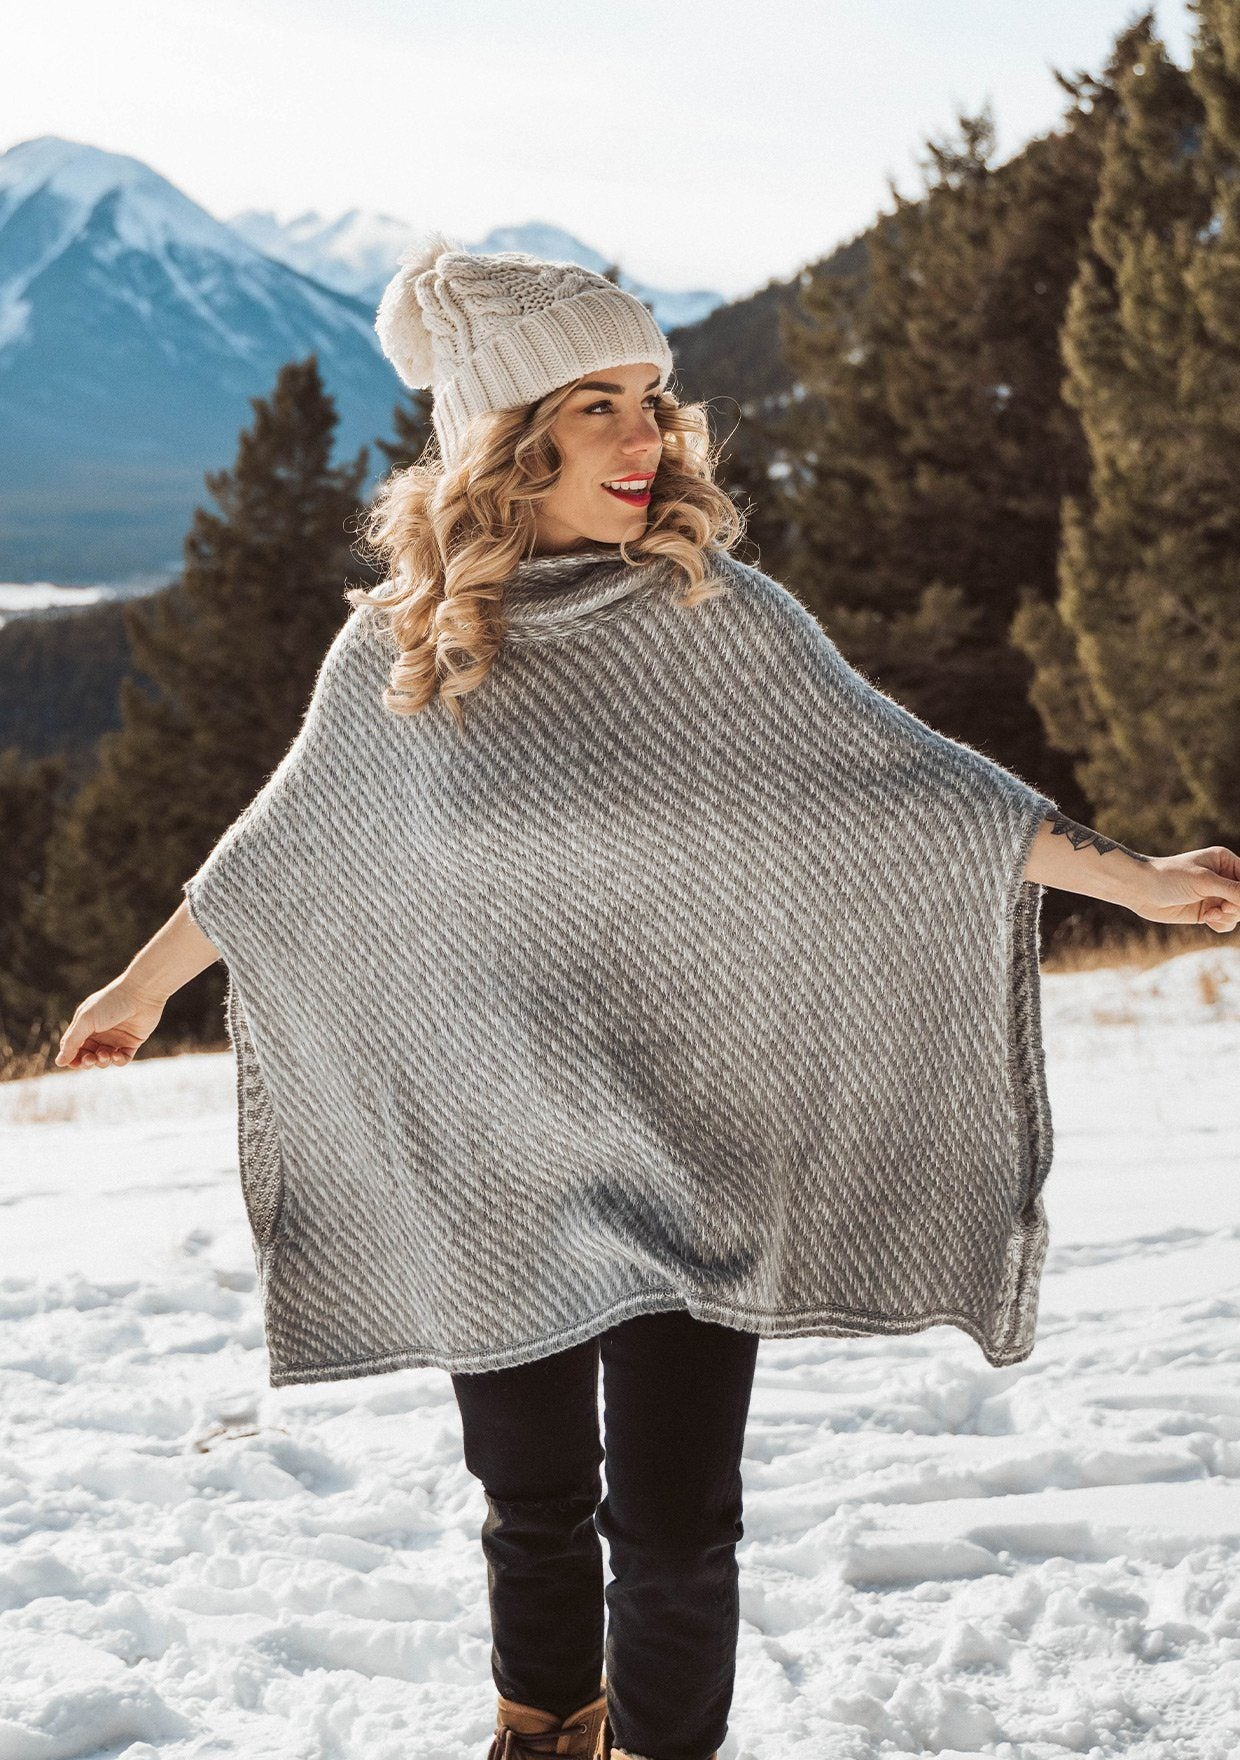 [Color: Ivory/Silver] An irresistibly warm and soft wool blend sweater poncho. Featuring a relaxed, oversized silhouette and a cozy cowlneck.